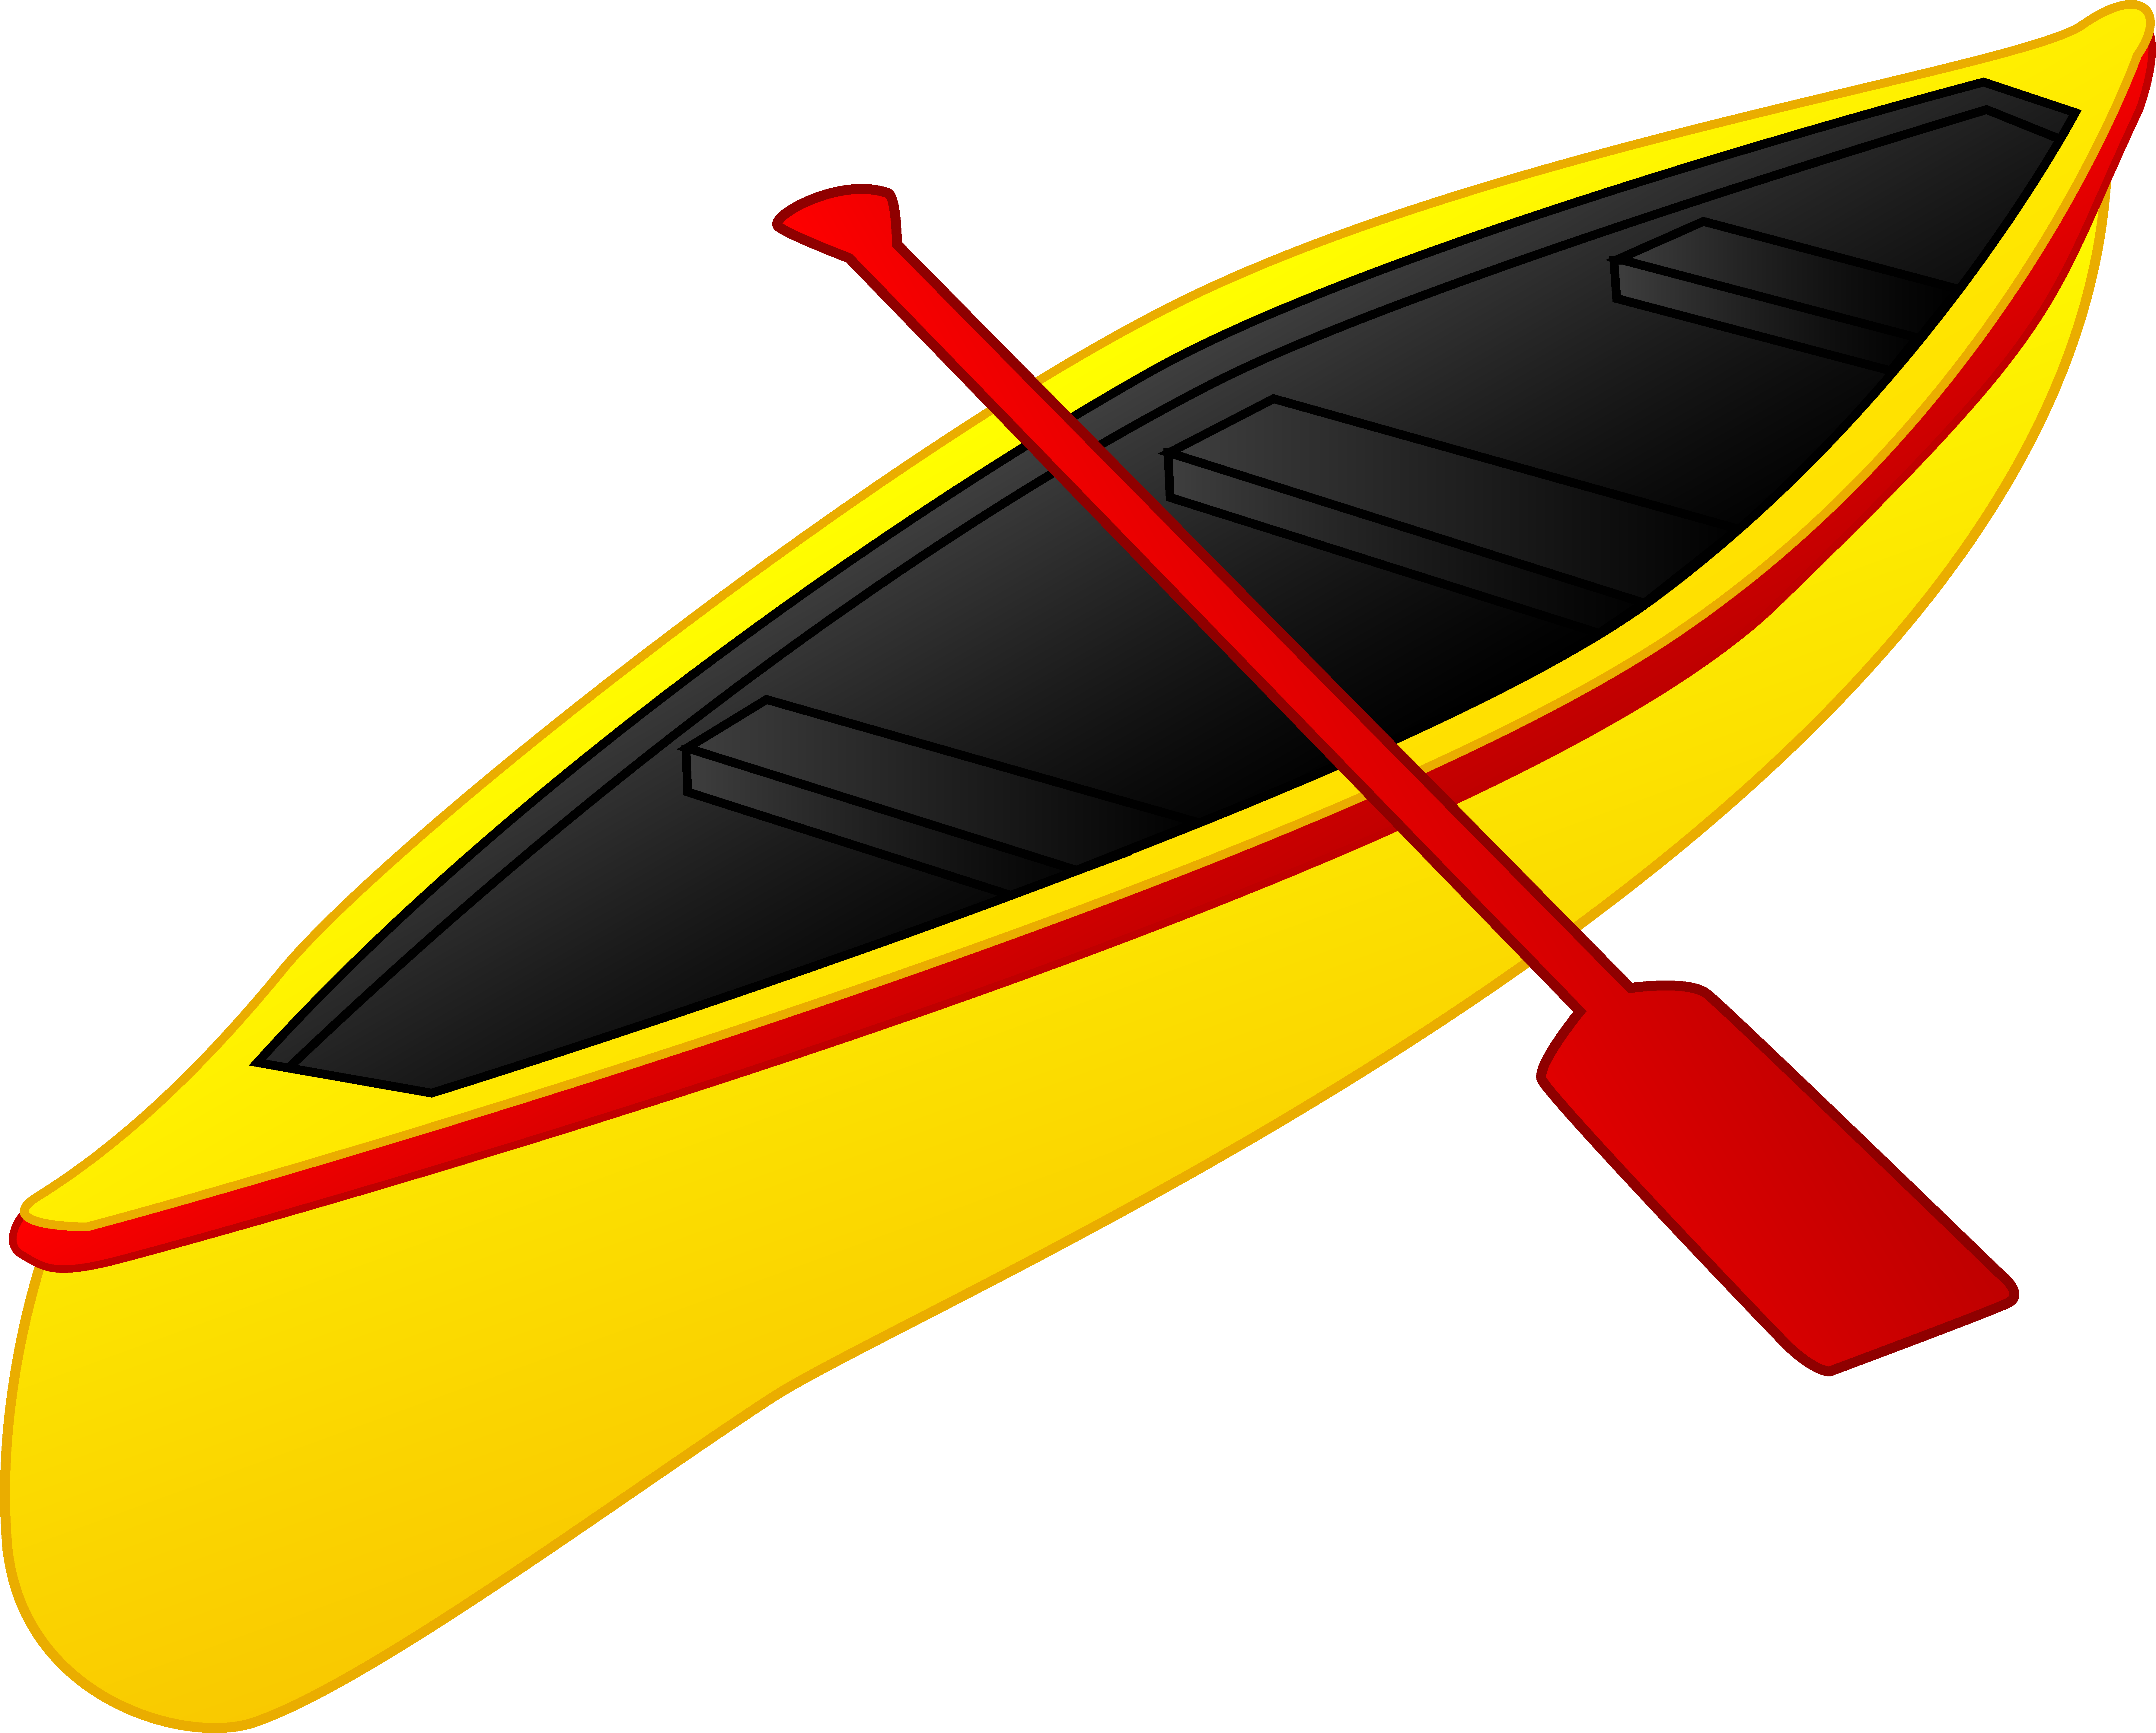 clipart free library Kayak clipart. Free kayaking cliparts download